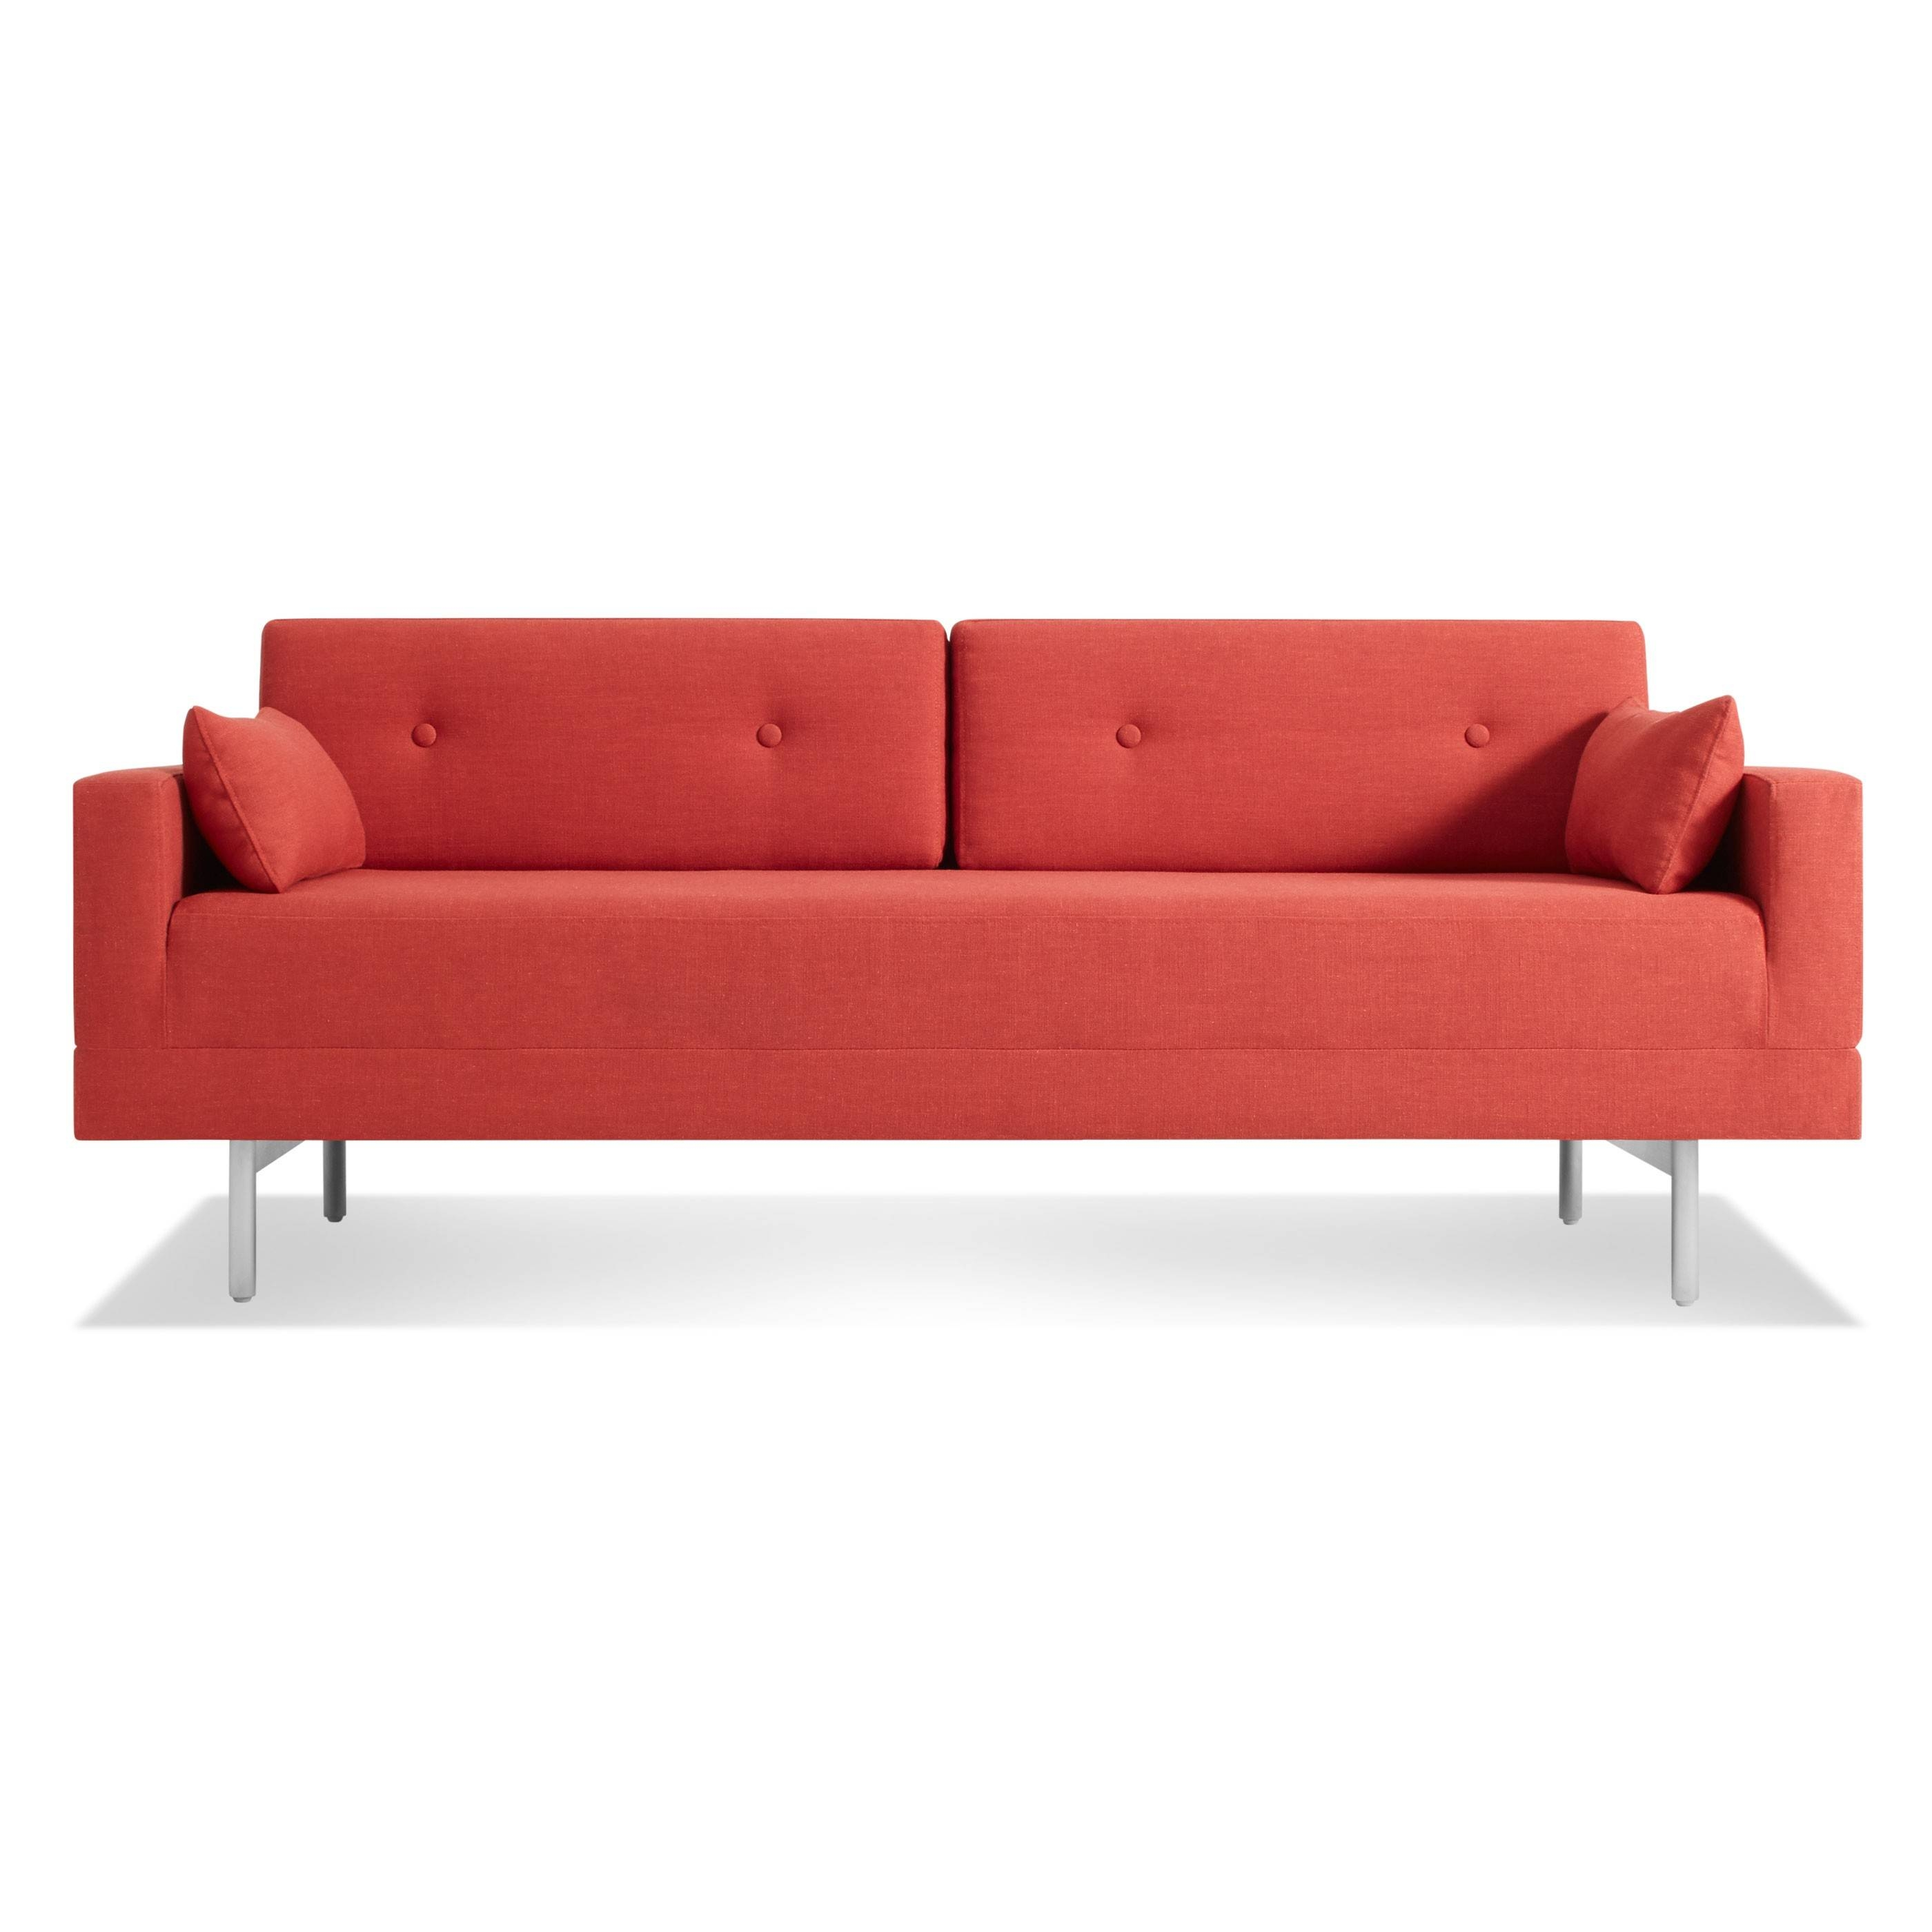 Sofa : Sleeper Sofas Los Angeles Home Design New Contemporary To pertaining to Los Angeles Sleeper Sofas (Image 12 of 15)